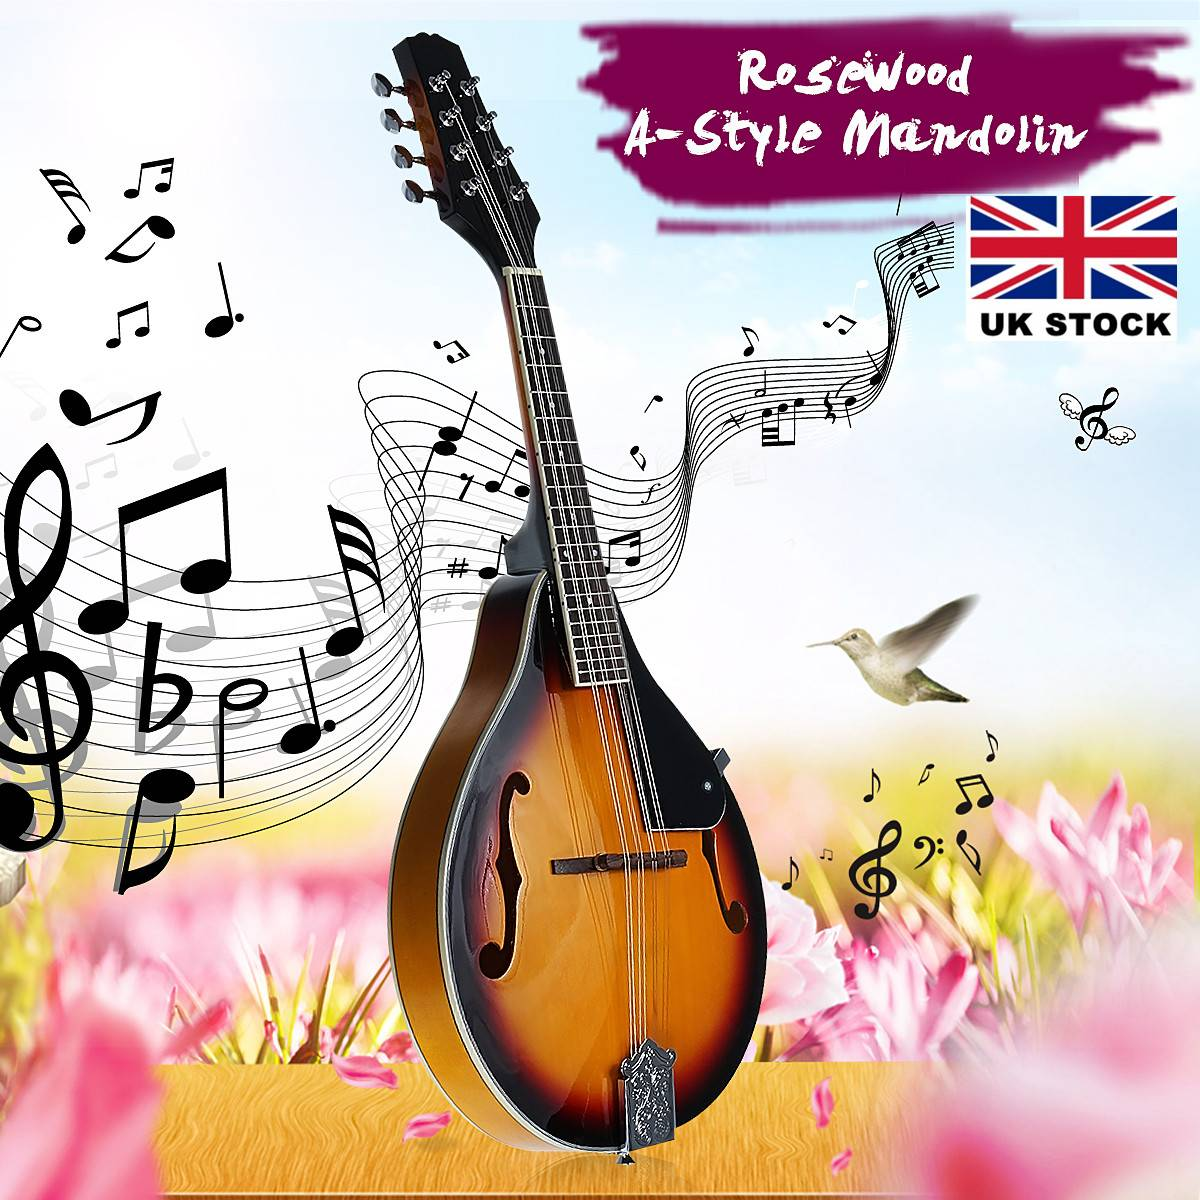 SENRHY Sunset Color Rosewood 8 Strings F Hole Electric Bass Guitar 20 Fret Ukulele for Musical Stringed Instruments LoversSENRHY Sunset Color Rosewood 8 Strings F Hole Electric Bass Guitar 20 Fret Ukulele for Musical Stringed Instruments Lovers